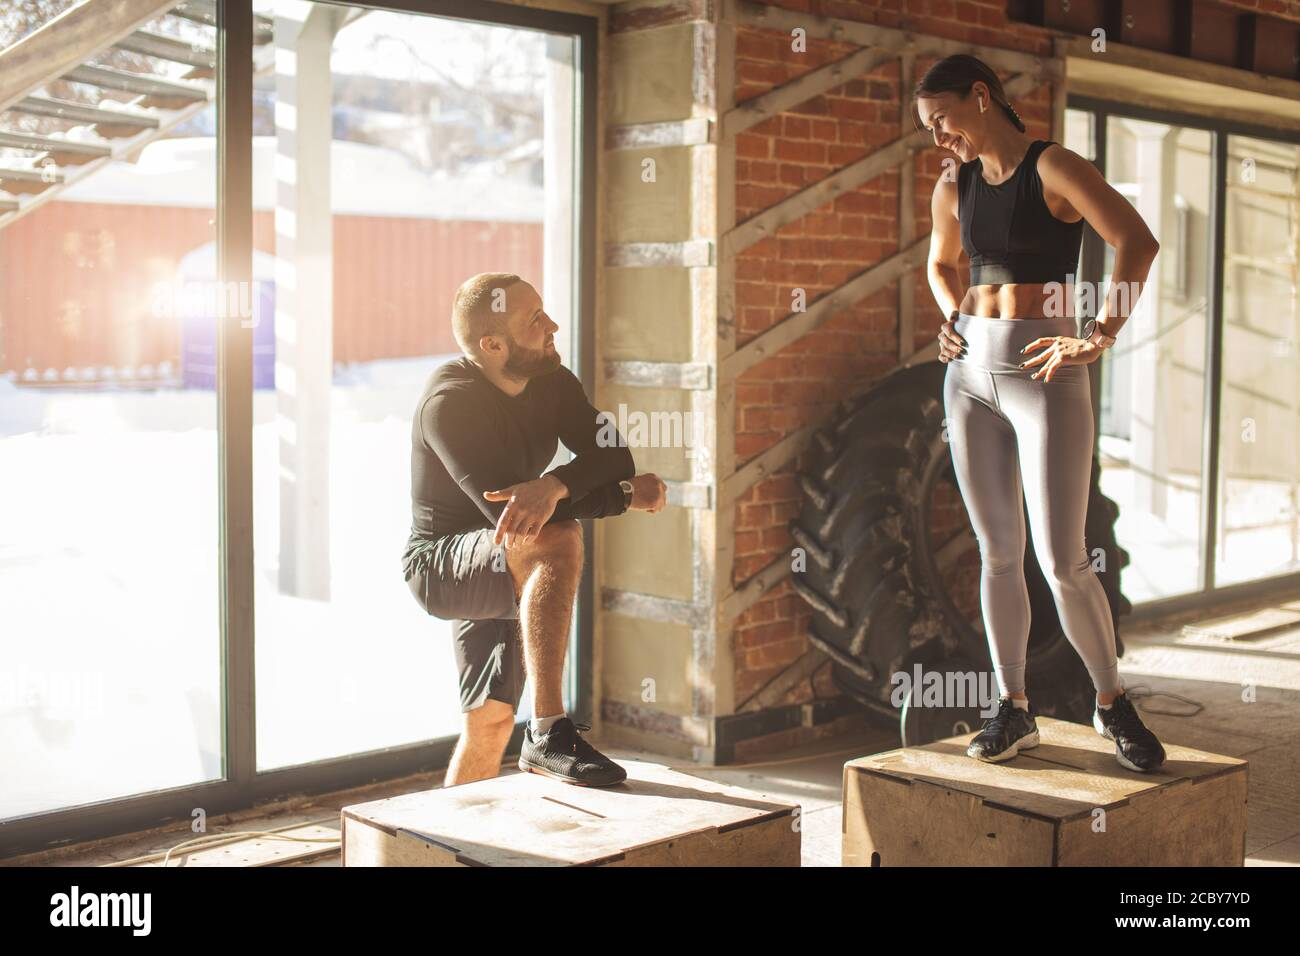 Caucasian bearded fitness coach gives advice to young smiling fit woman. SportsPeople talking friendly in a modern gym with crossfit equipment. Stock Photo